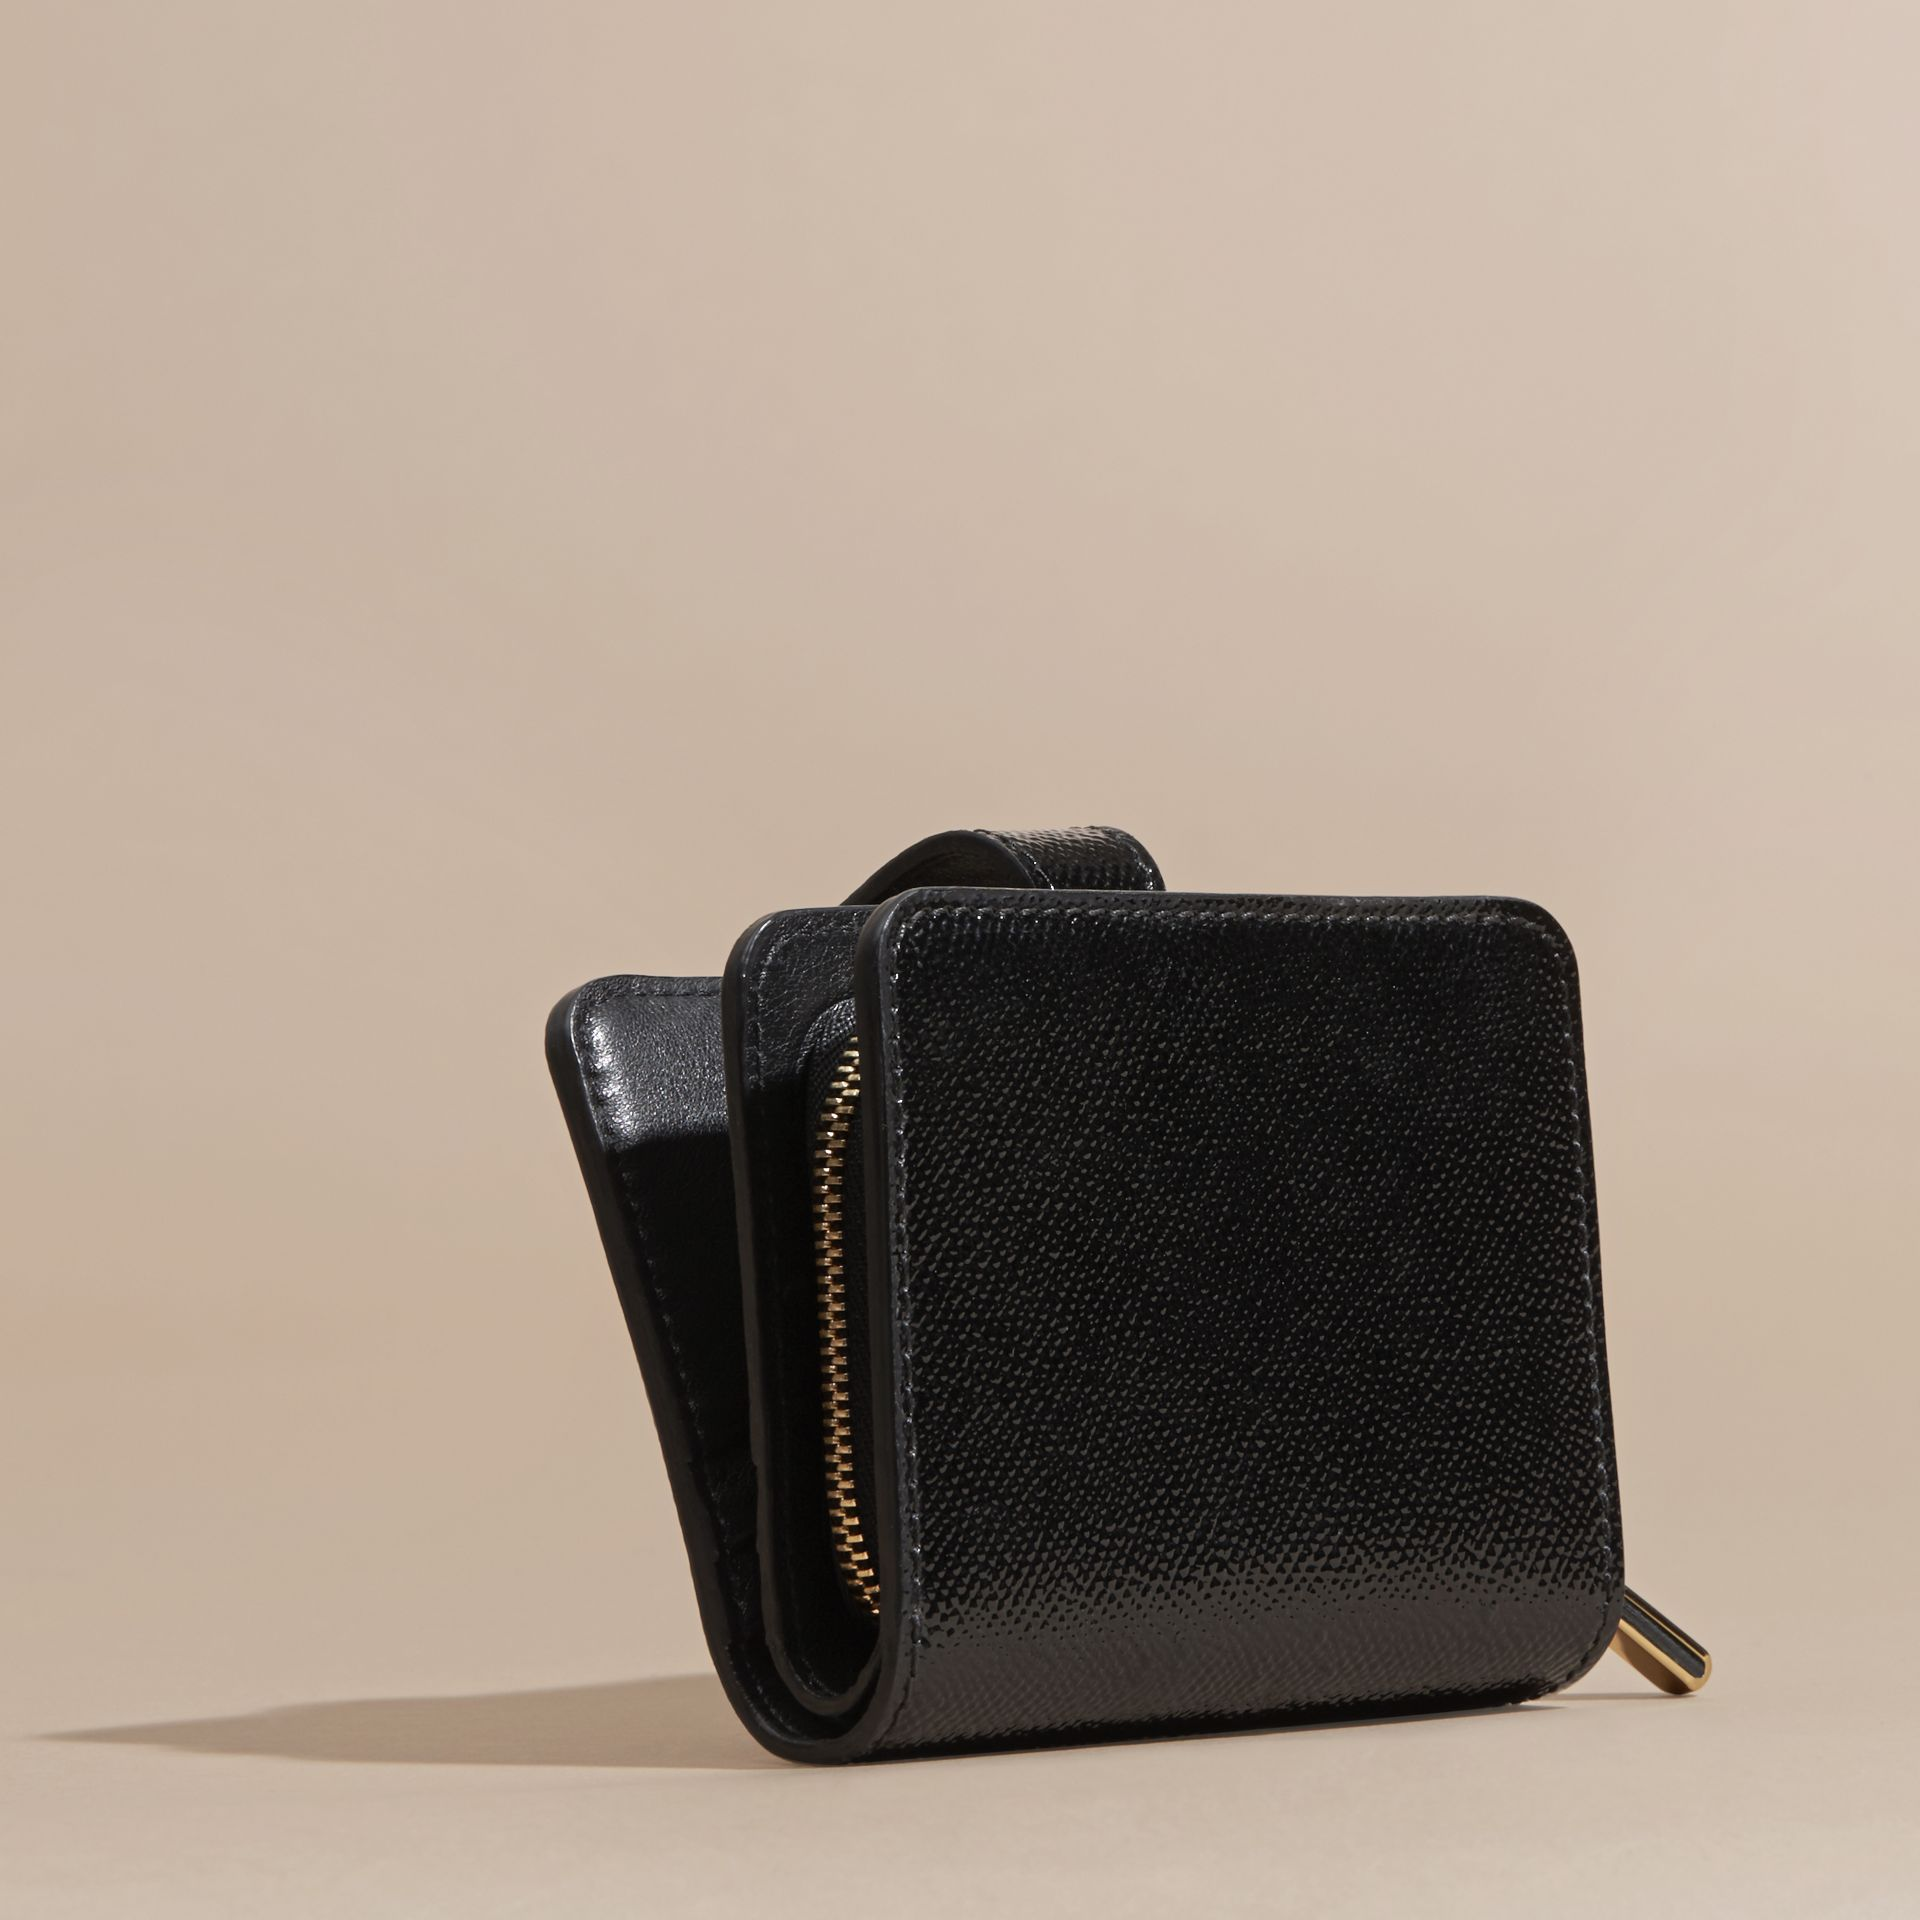 Black Patent London Leather Wallet Black - gallery image 4